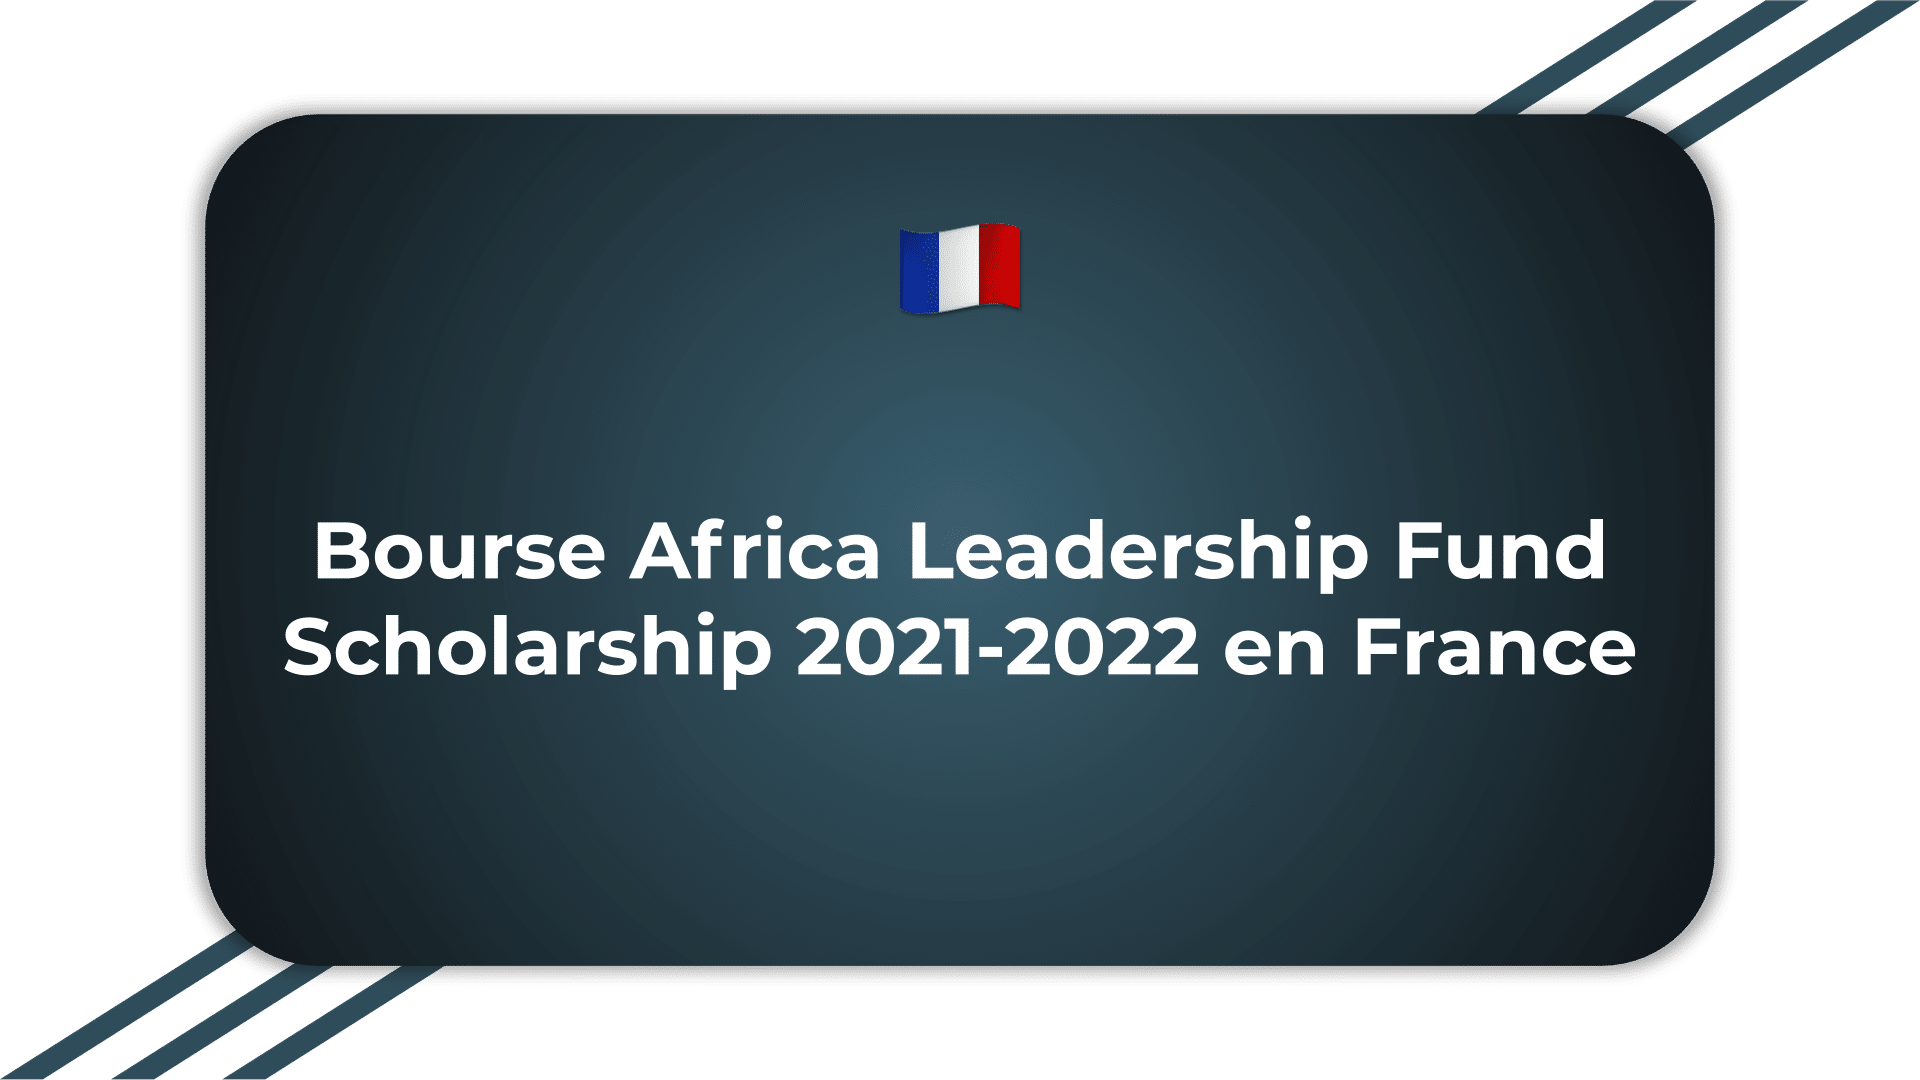 Bourse Africa Leadership Fund Scholarship